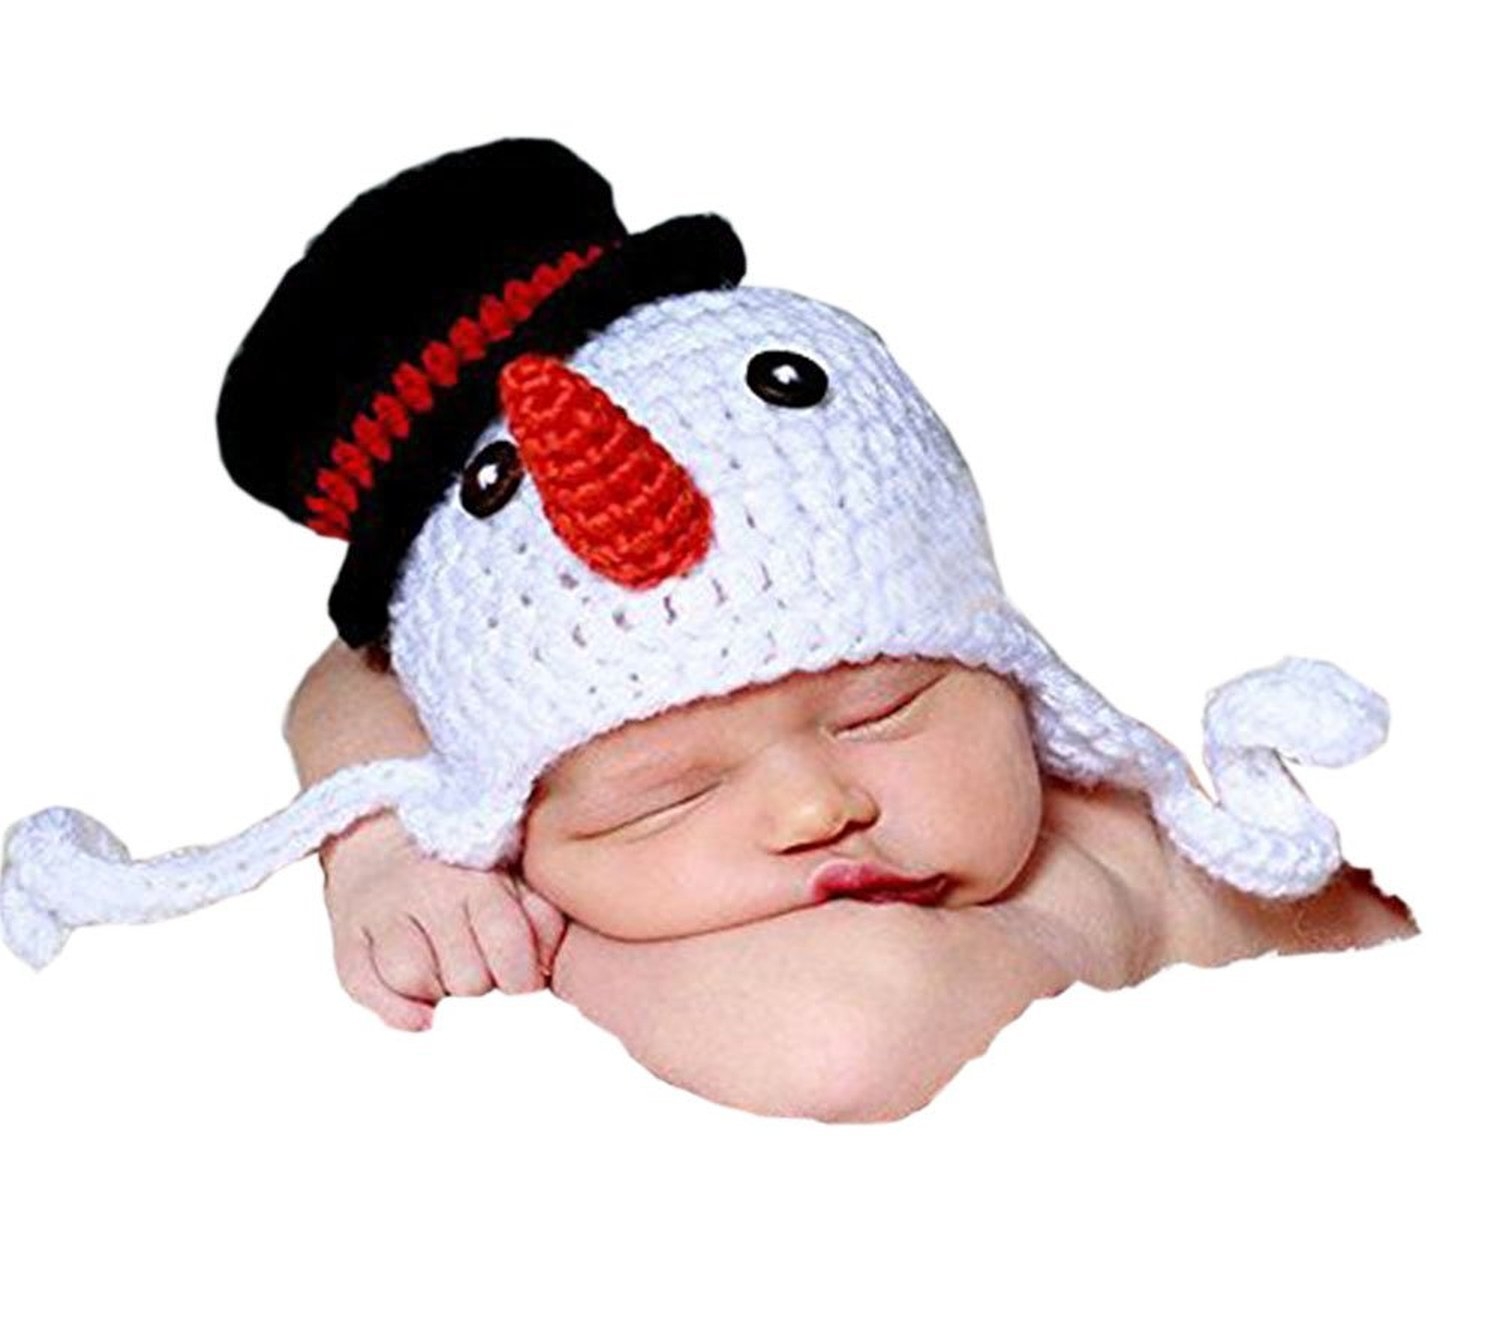 Amazon.com   YOIOY Baby Snowman Hat Crochet Knitted Costume Cap   Baby f90237a3aa8